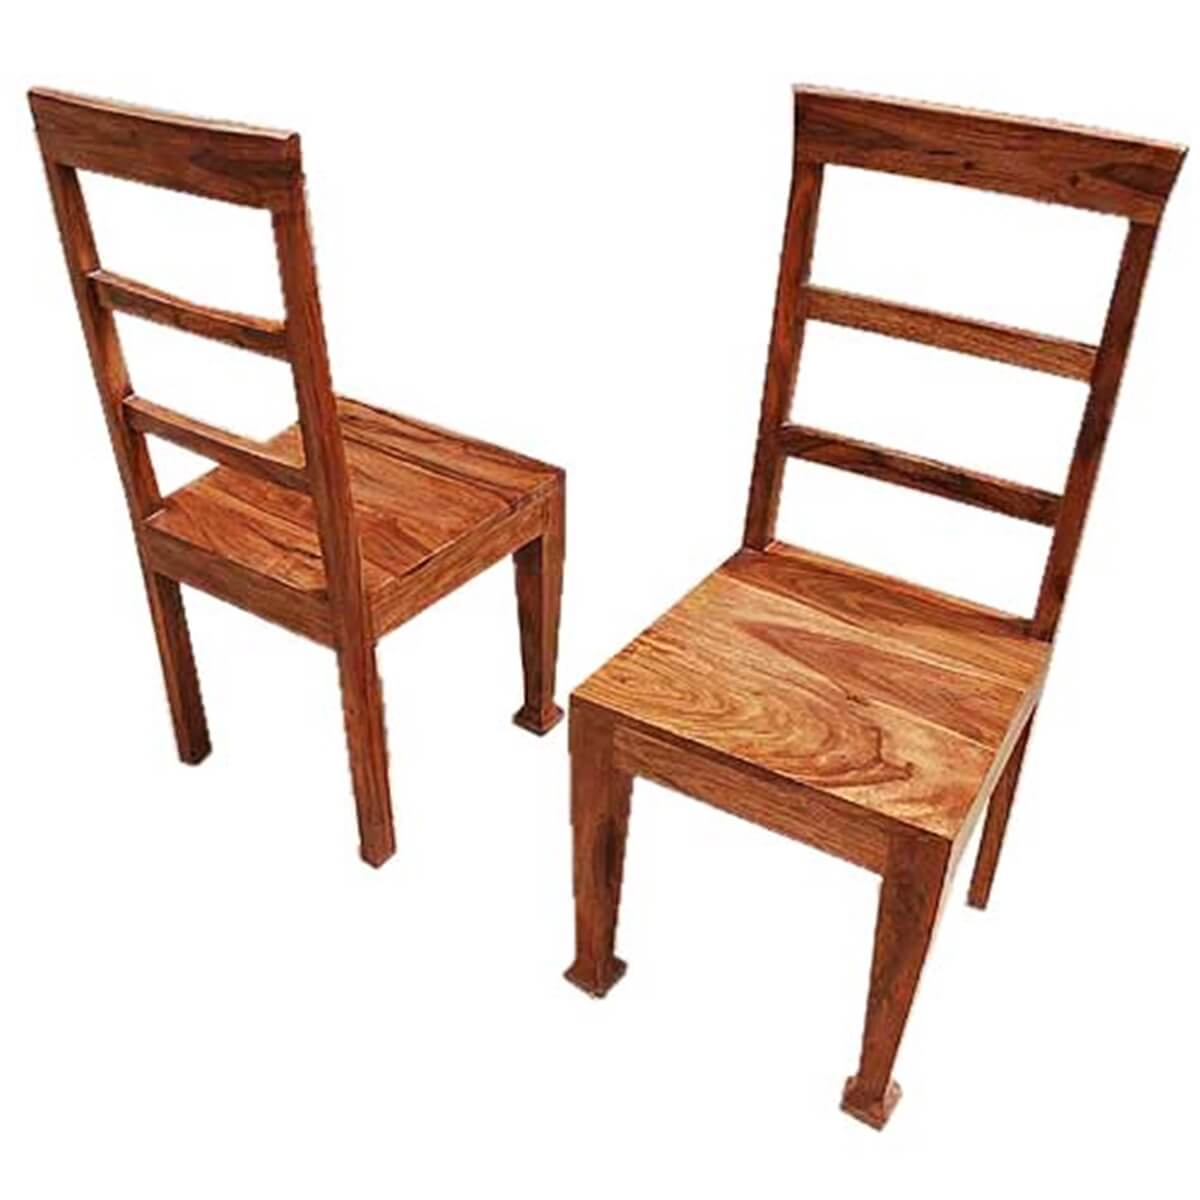 Rustic furniture solid wood dining table chair set for Solid wood dining room table and chairs